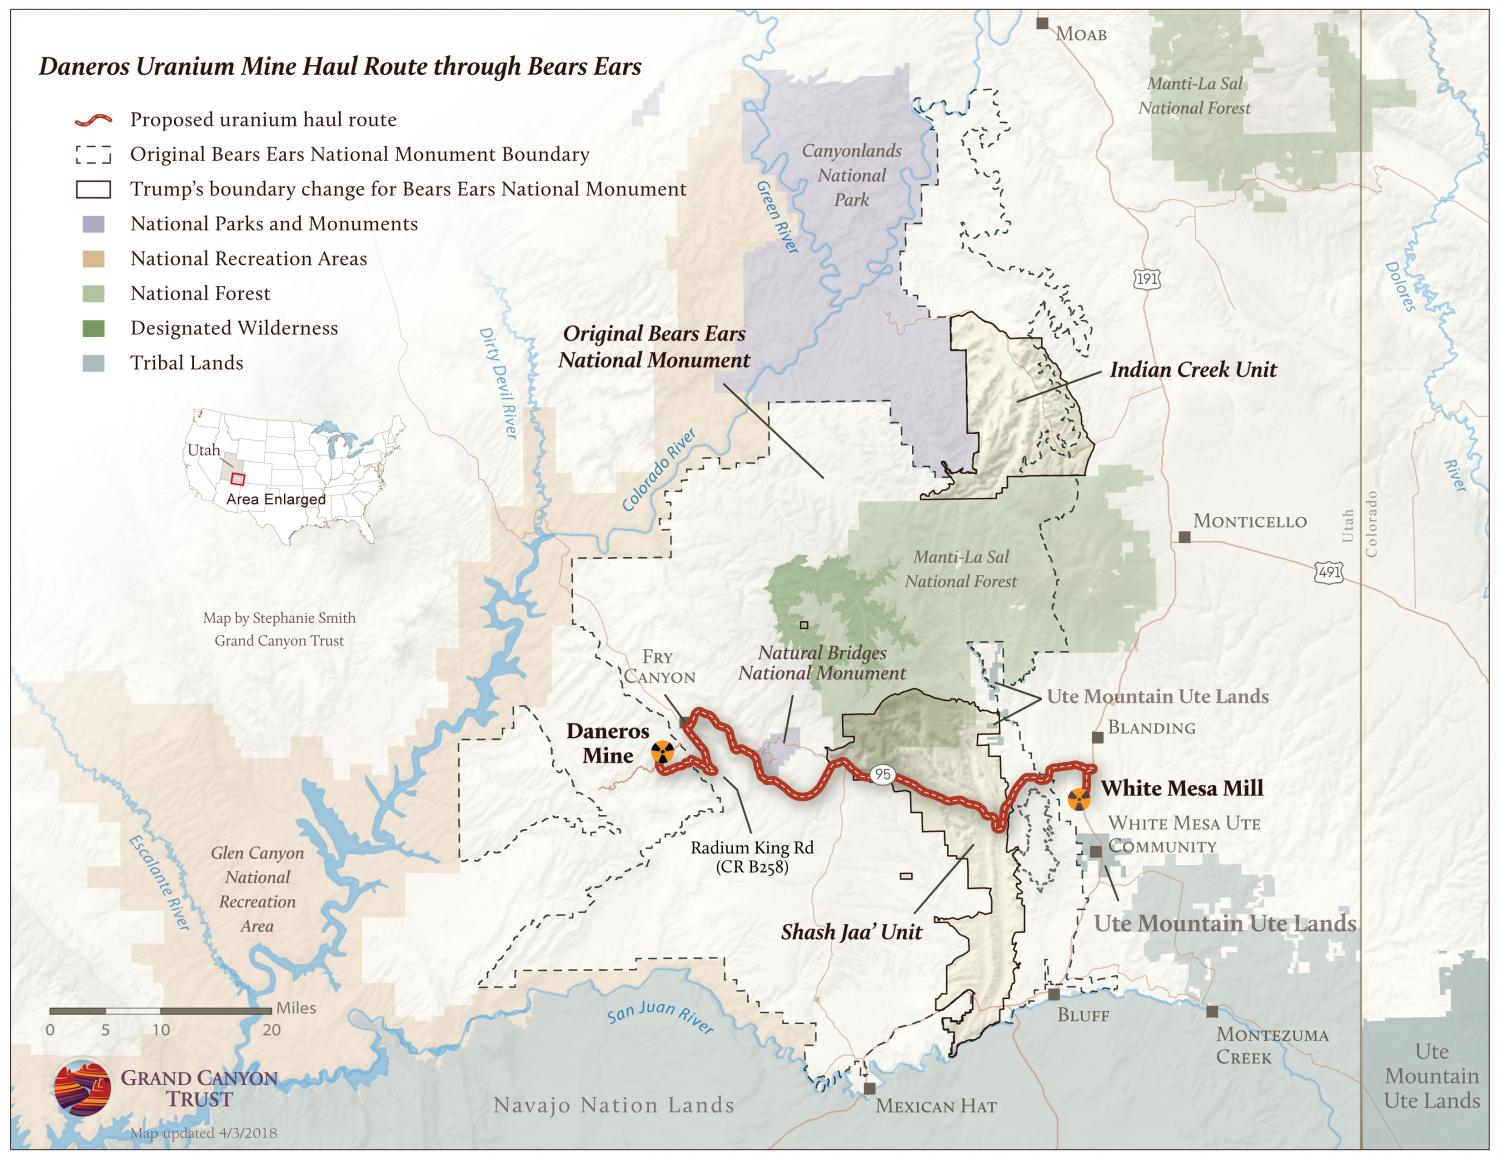 Daneros Uranium Mine Haul Route through Bears Ears